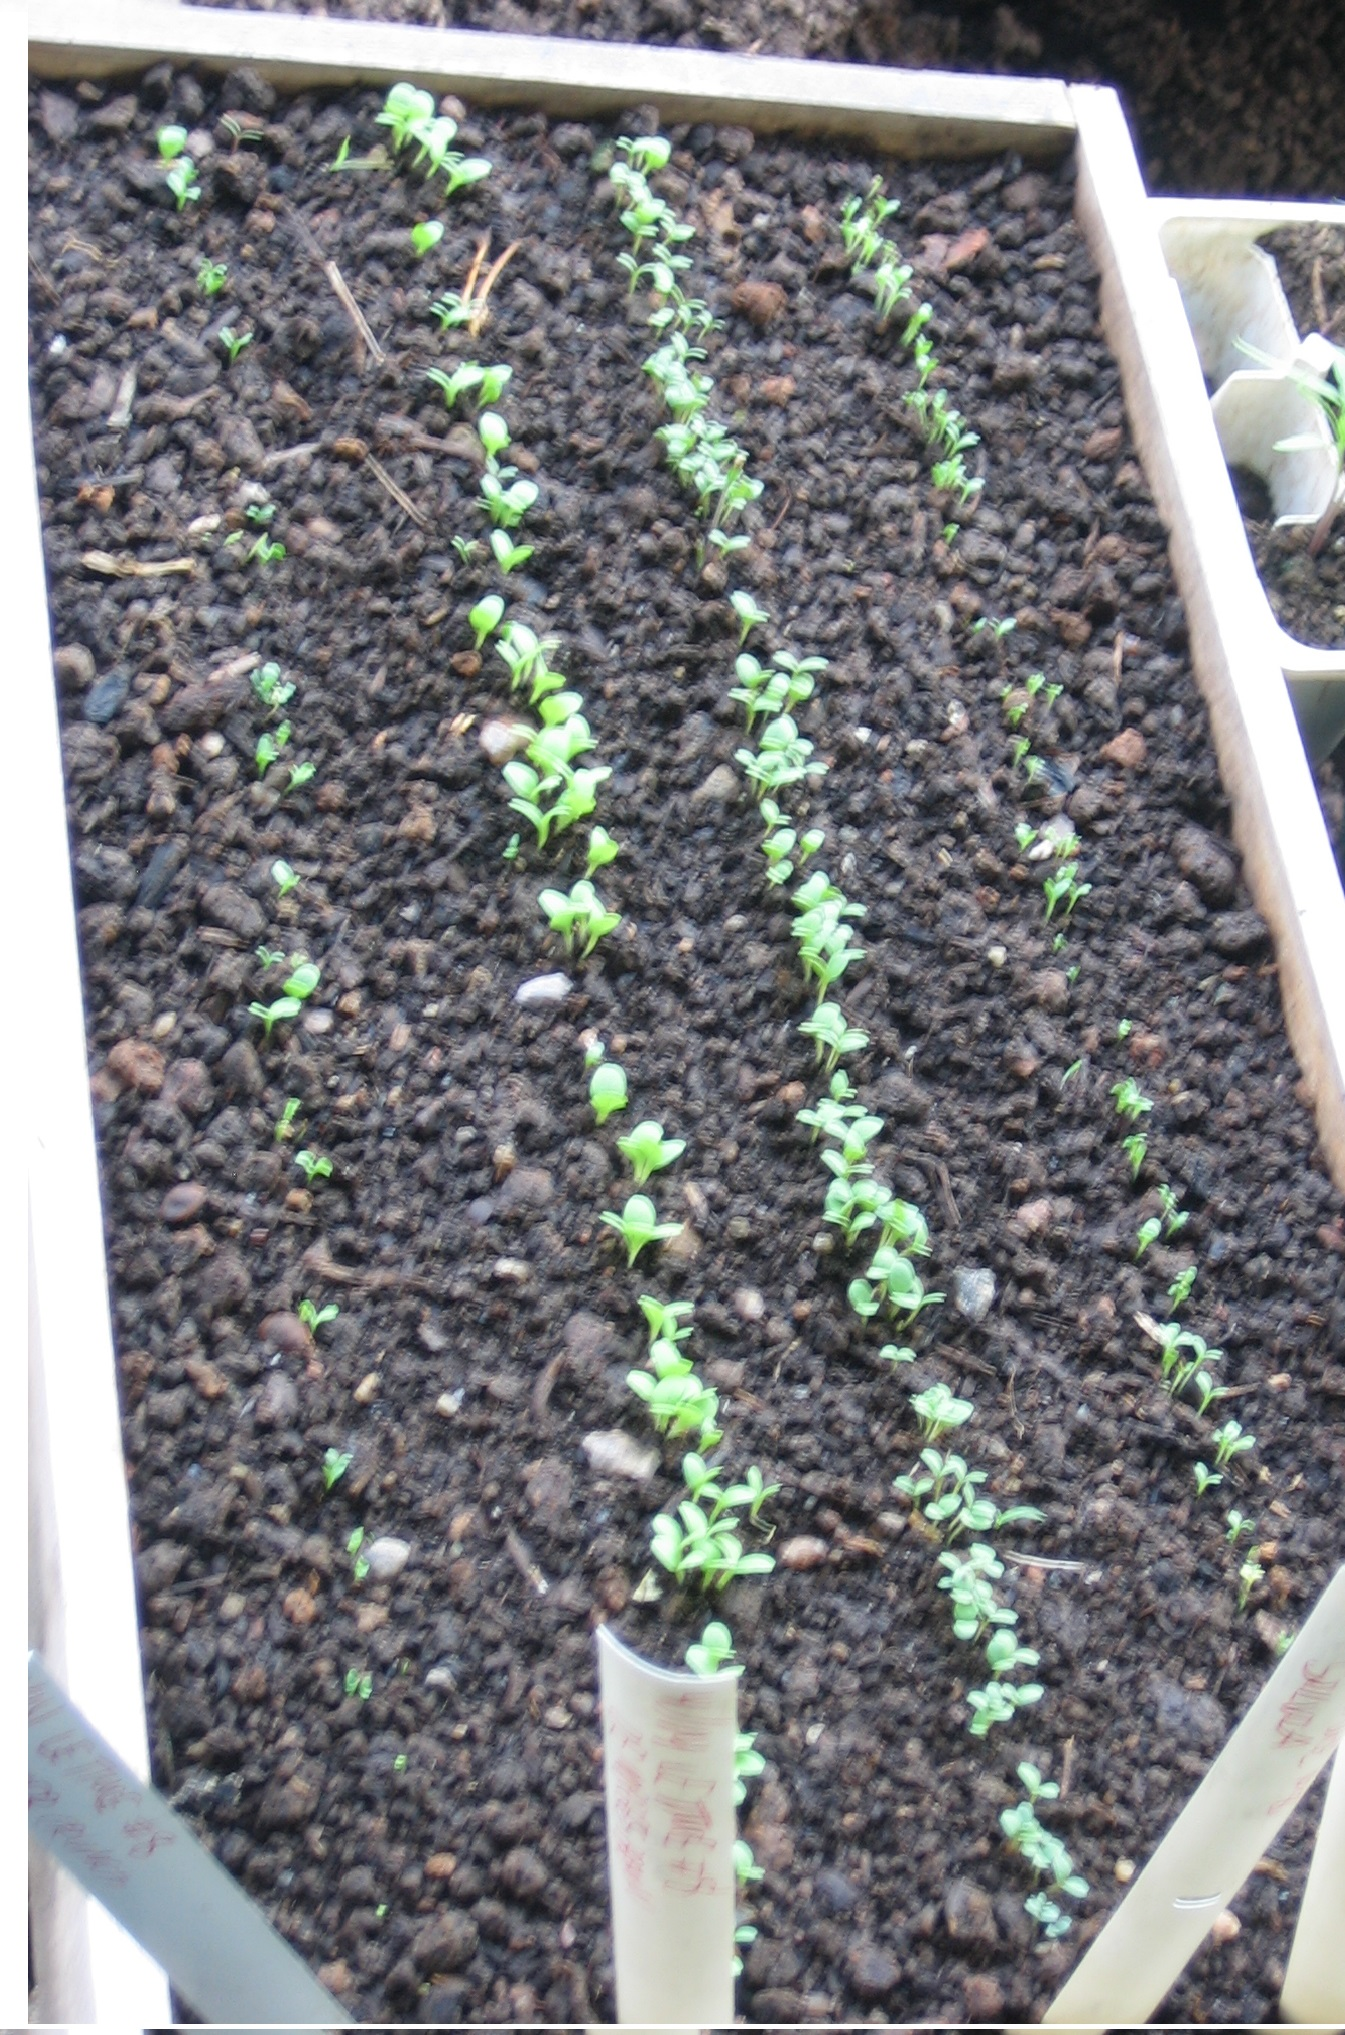 Newly germinated lettuce seedlings. Photo Kathryn Simmons